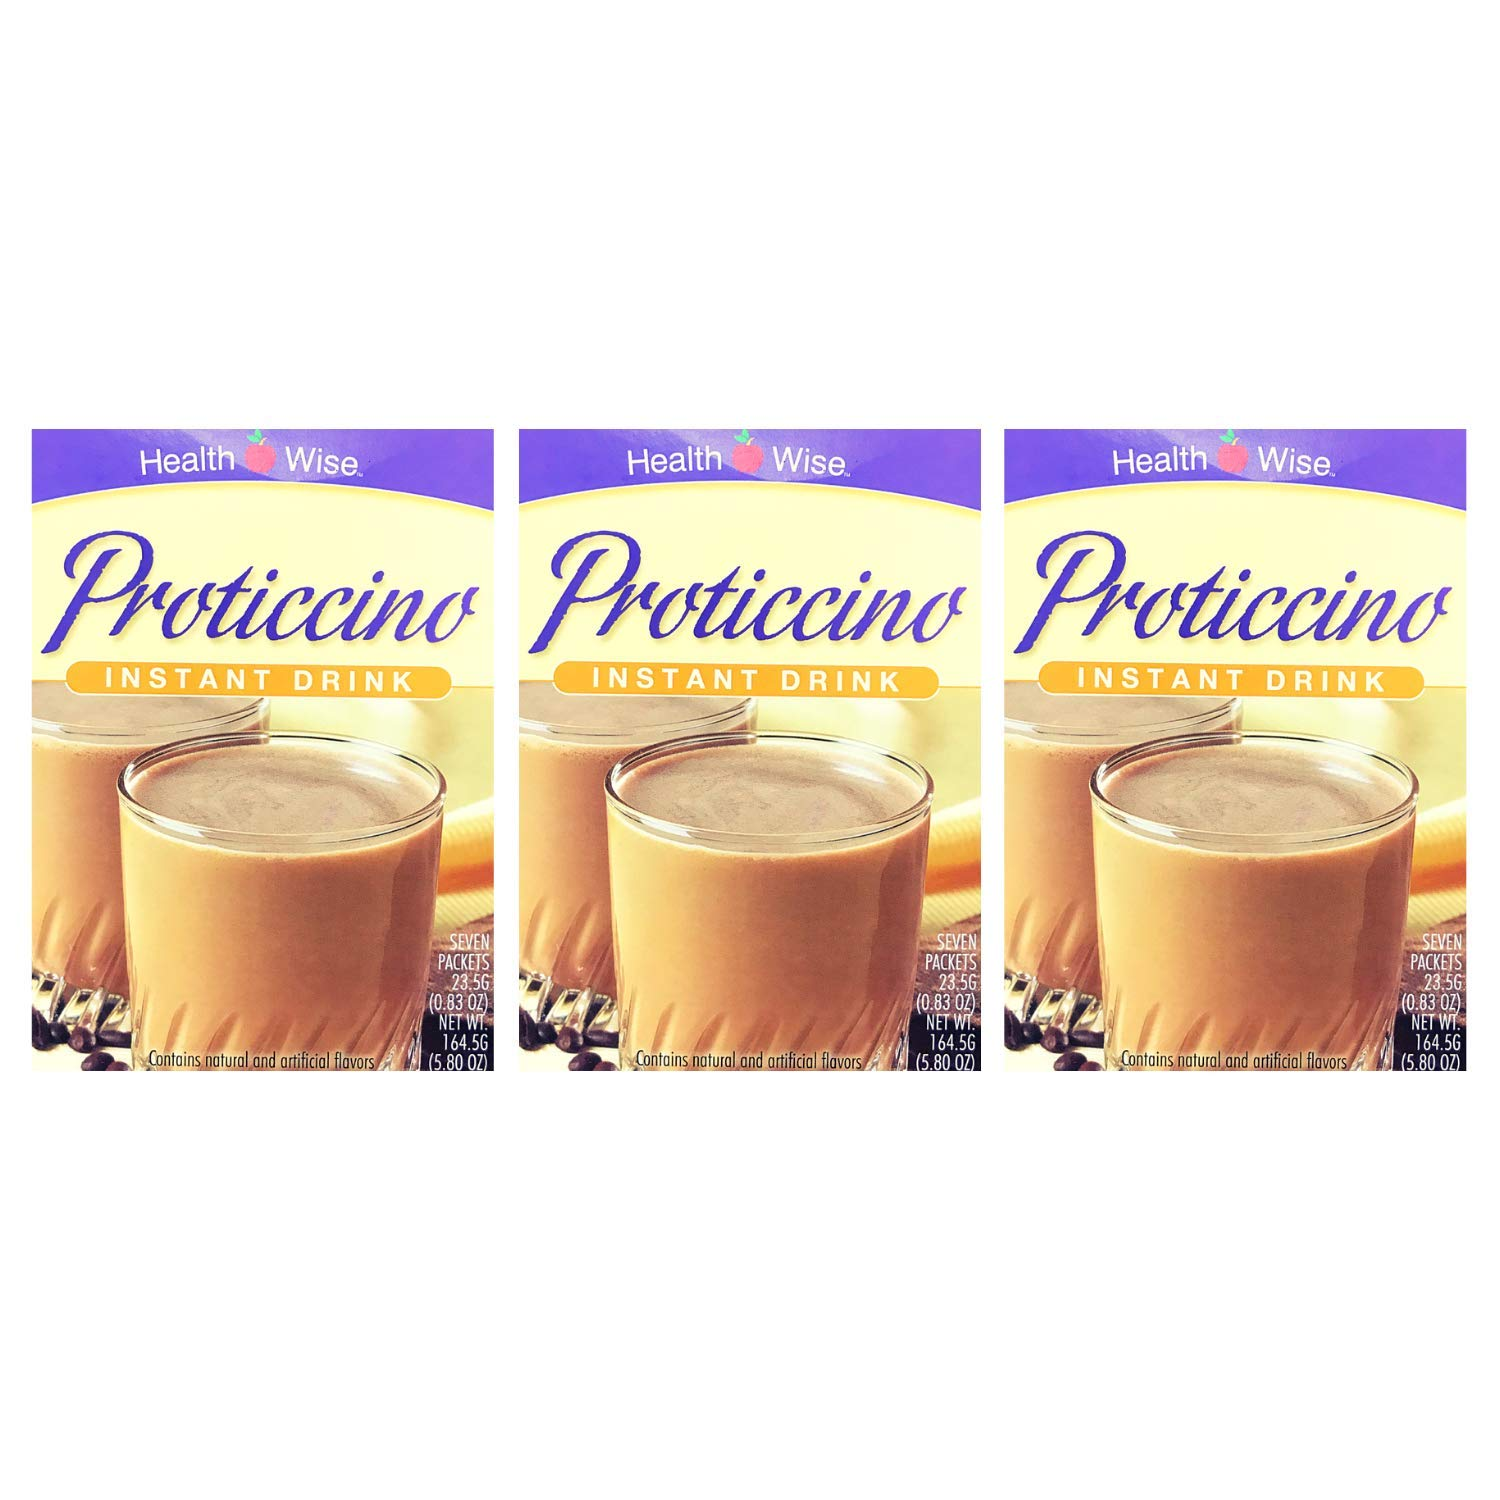 3 Box Value Pack ( 21 Servings) Healthwise - High Protein Diet Drink - Proticcino- Instant Weight Loss Hot or Cold Drink - 15g Protein - Low Sugar - Low Carb - Low Calorie